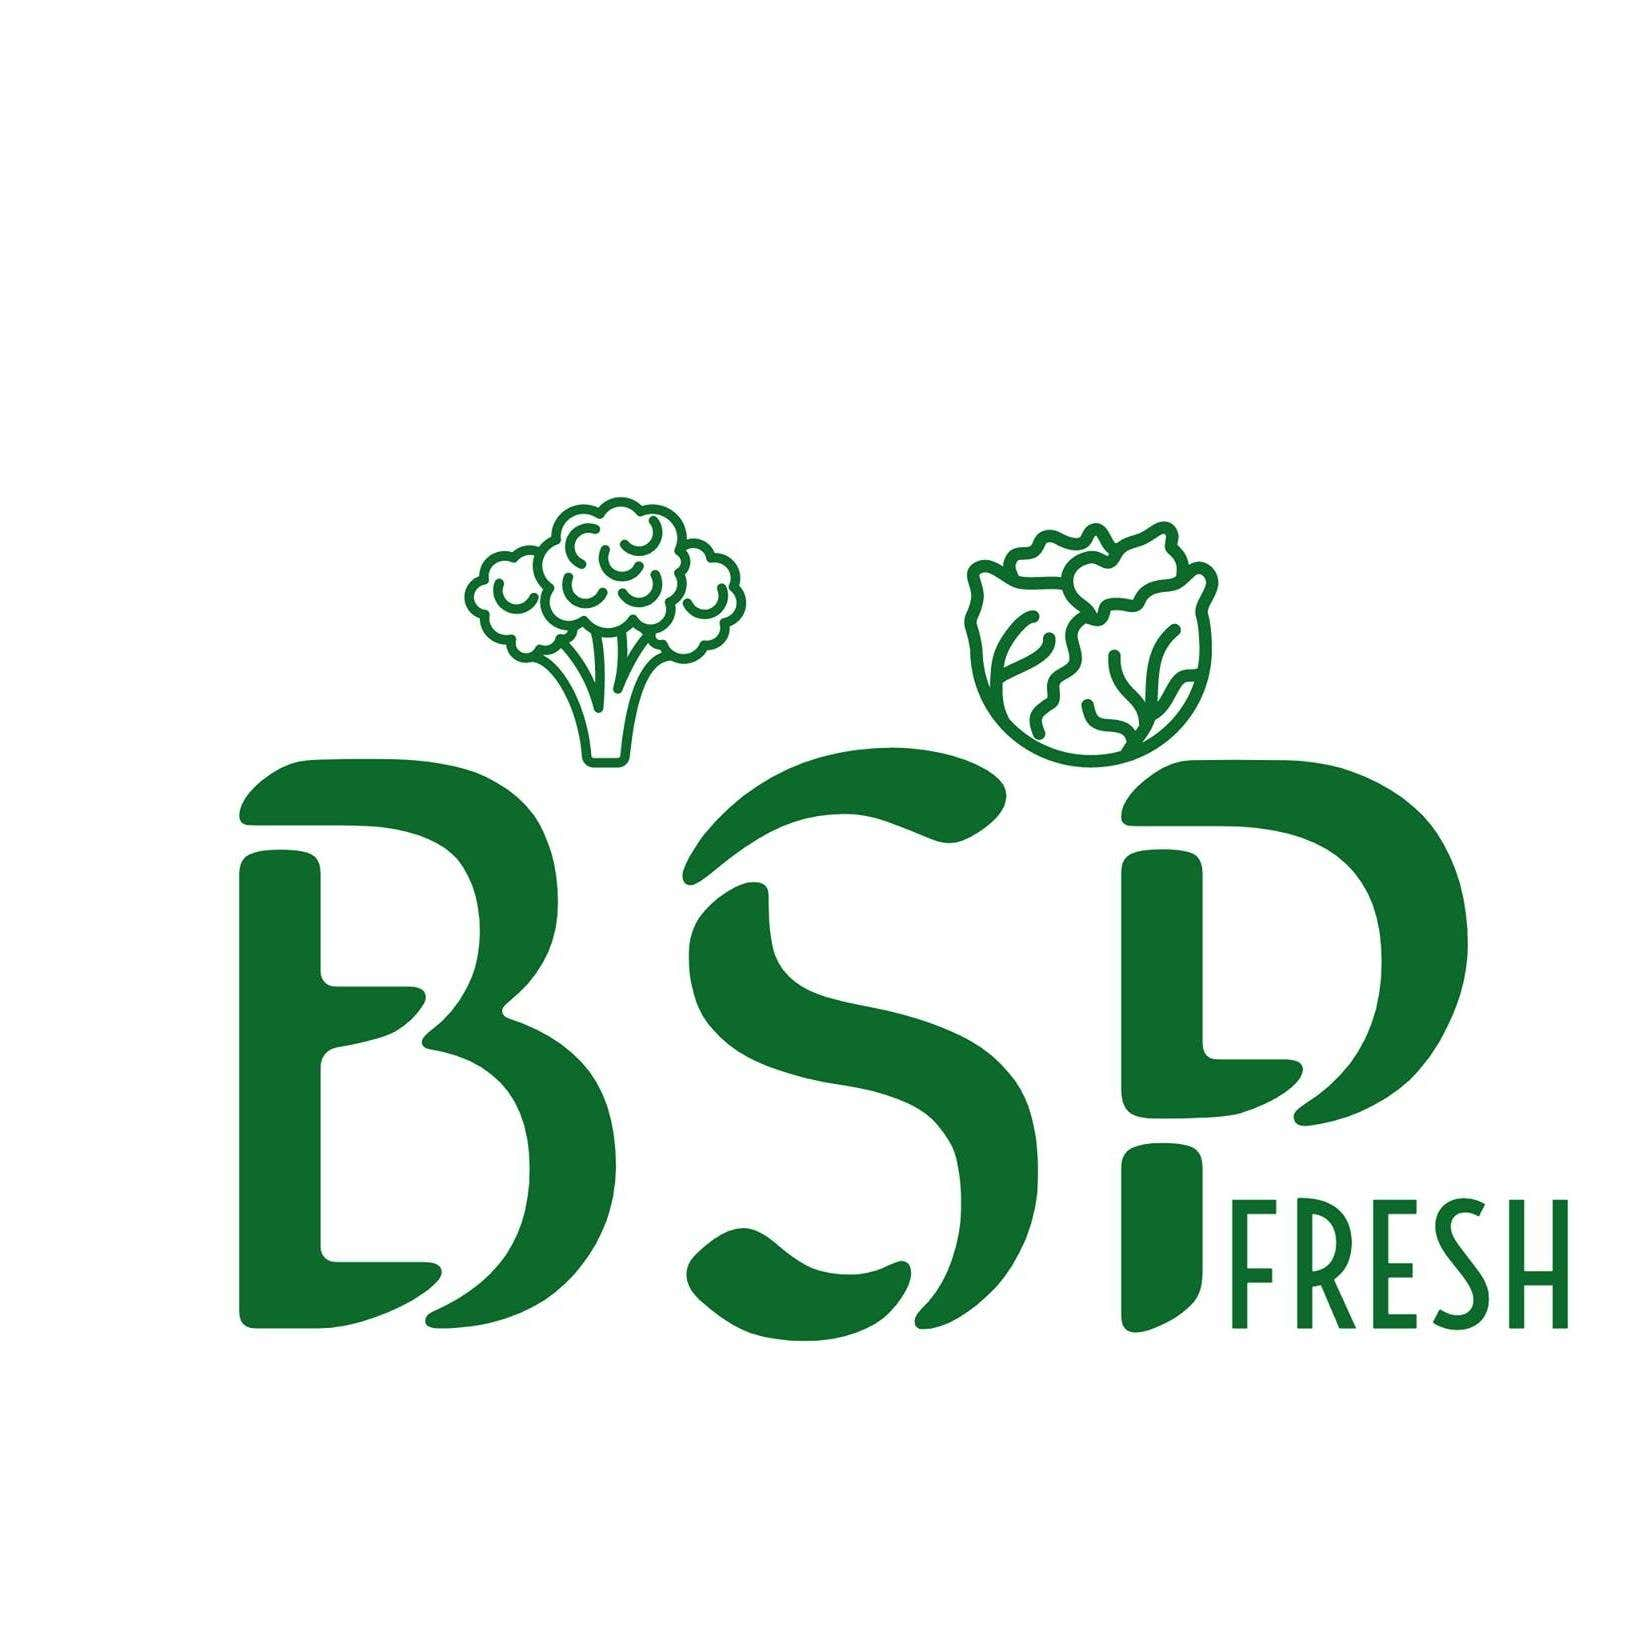 Berry & Sons Produce